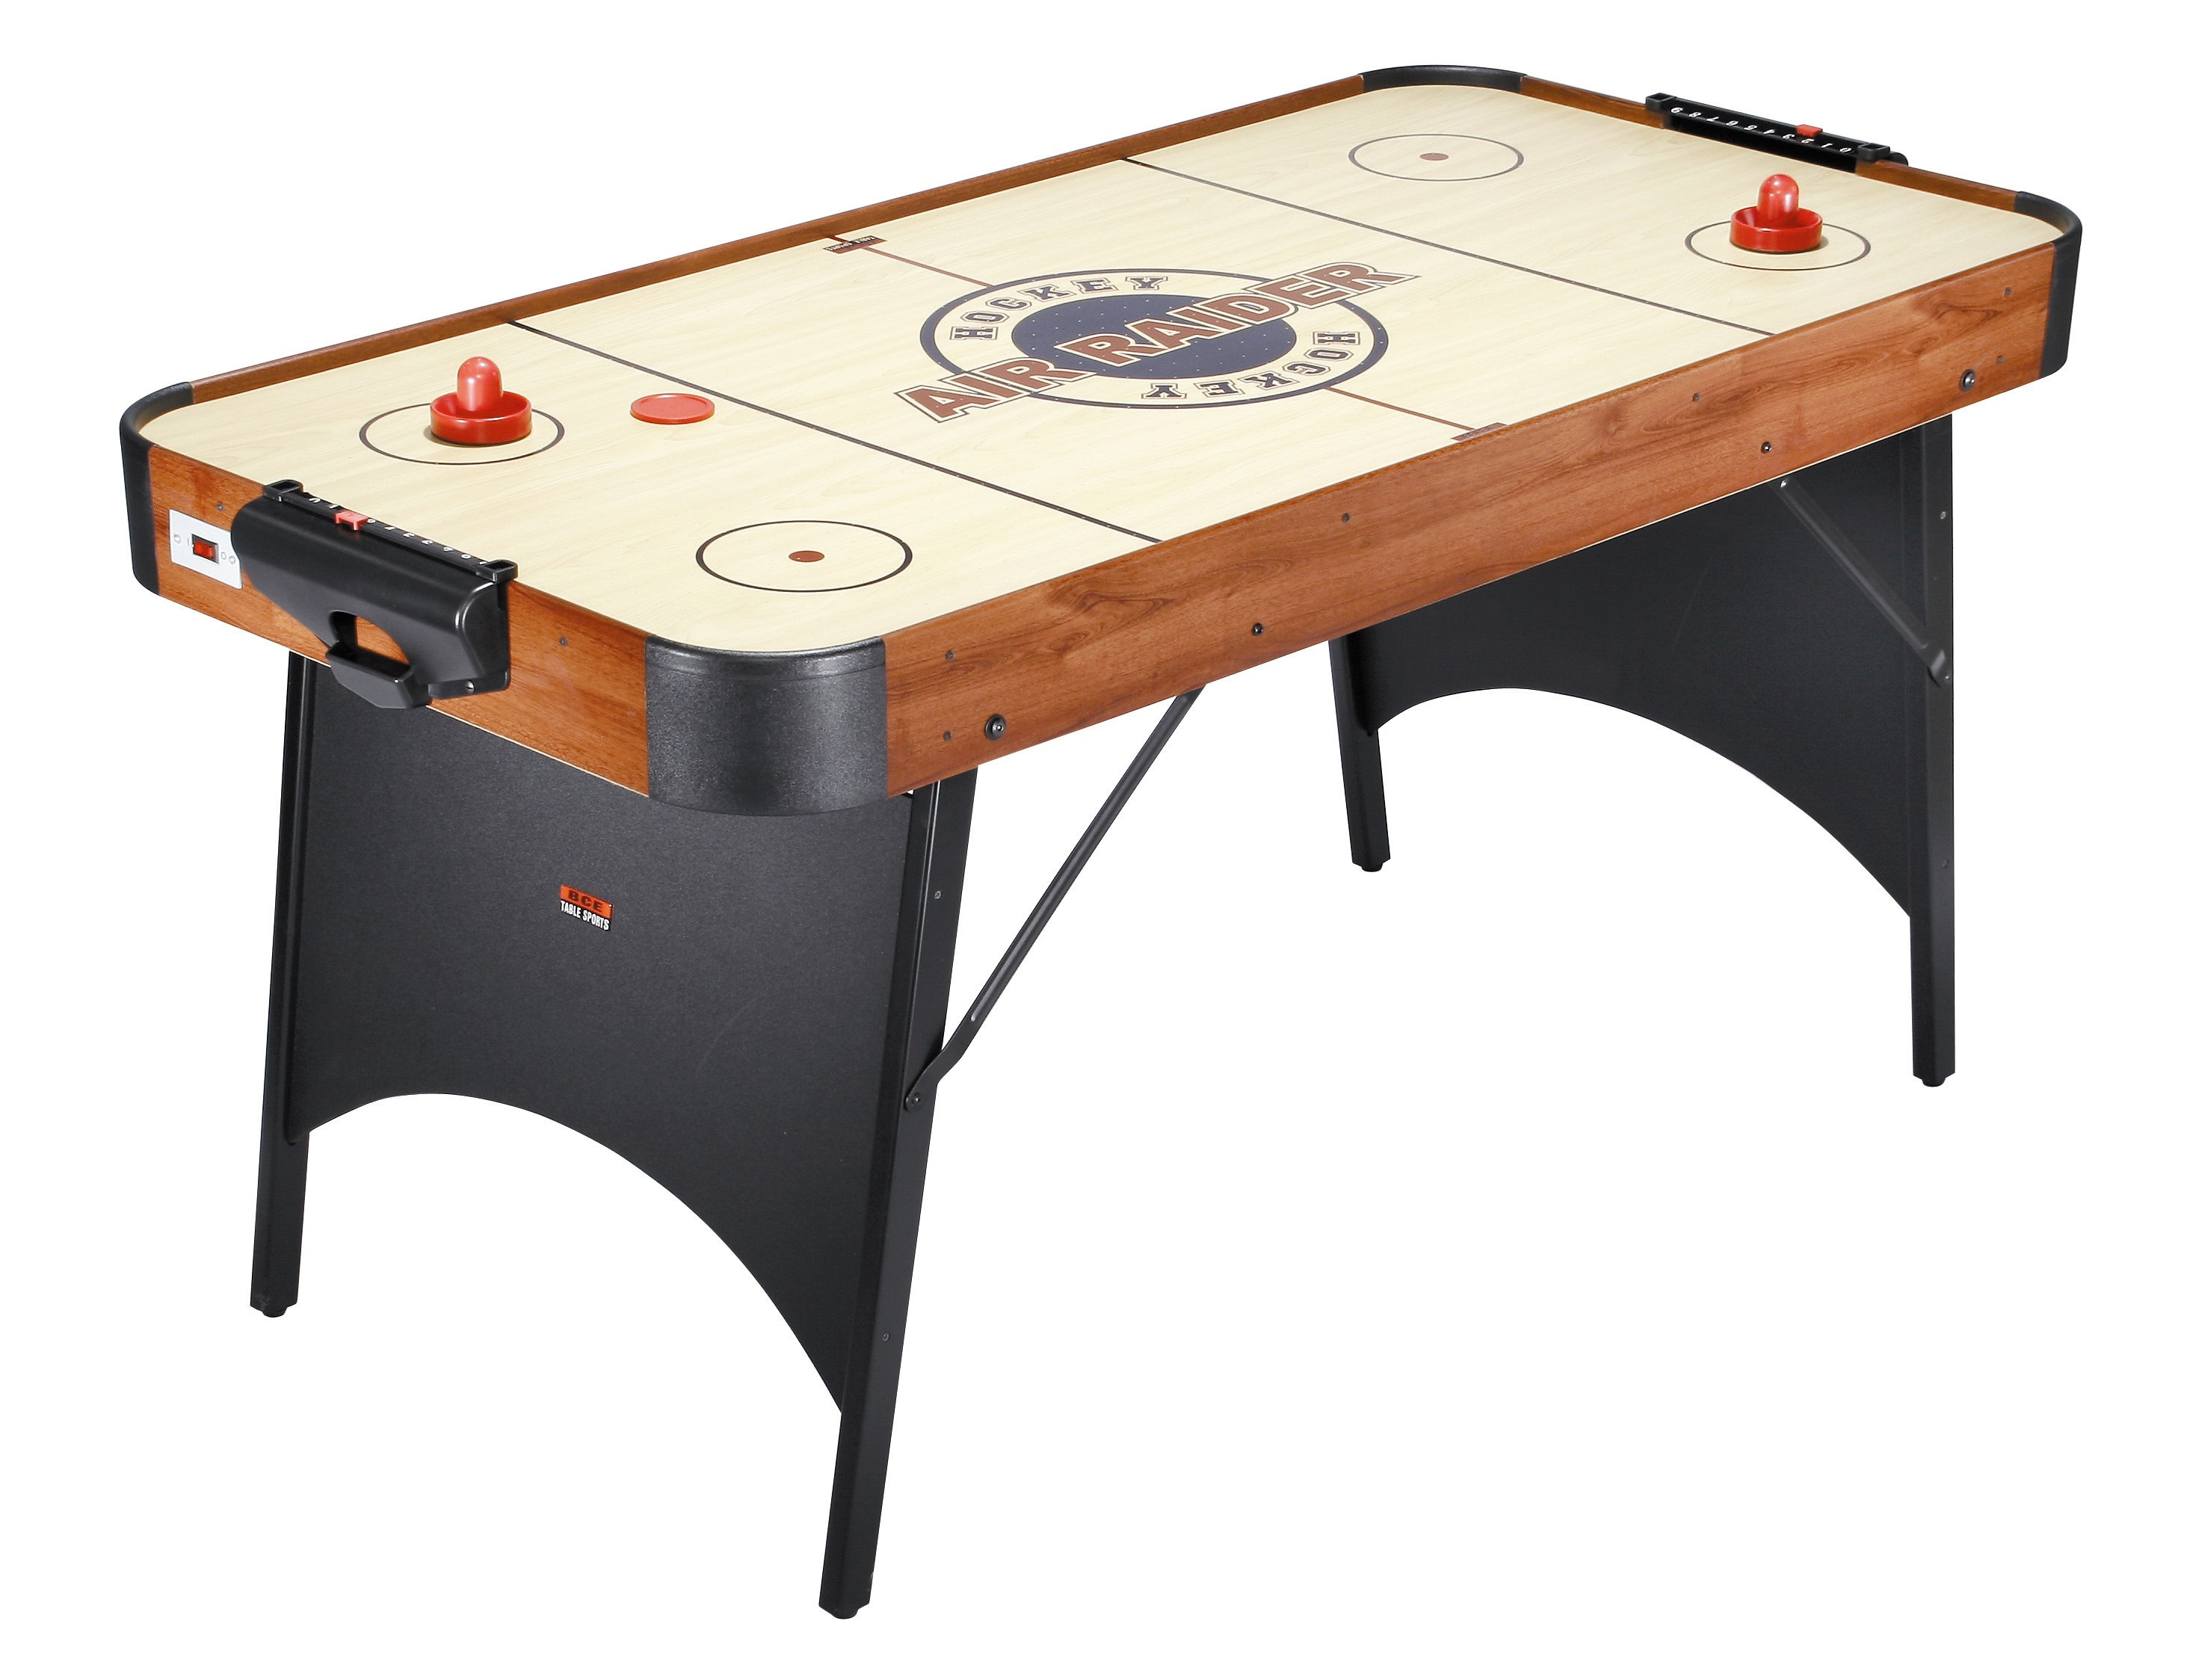 Yukon Patriot 8 foot Commercial Air Hockey Table | Liberty Games